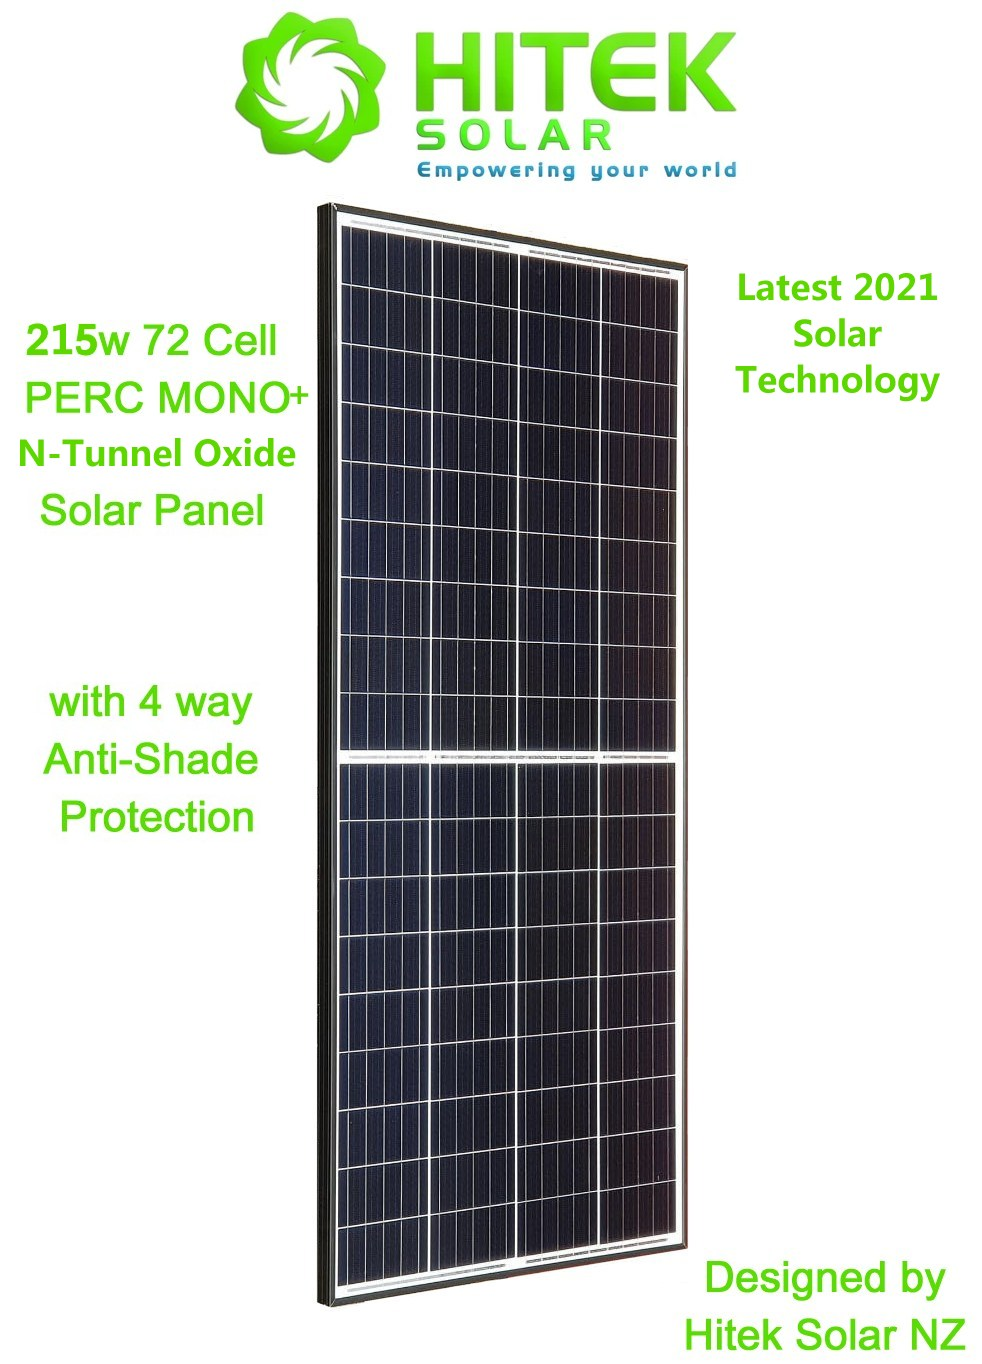 215w PERC MONO+N-TO Solar Panel (4 Way Anti-Shading Protection) - Latest Solar Technology for 2021